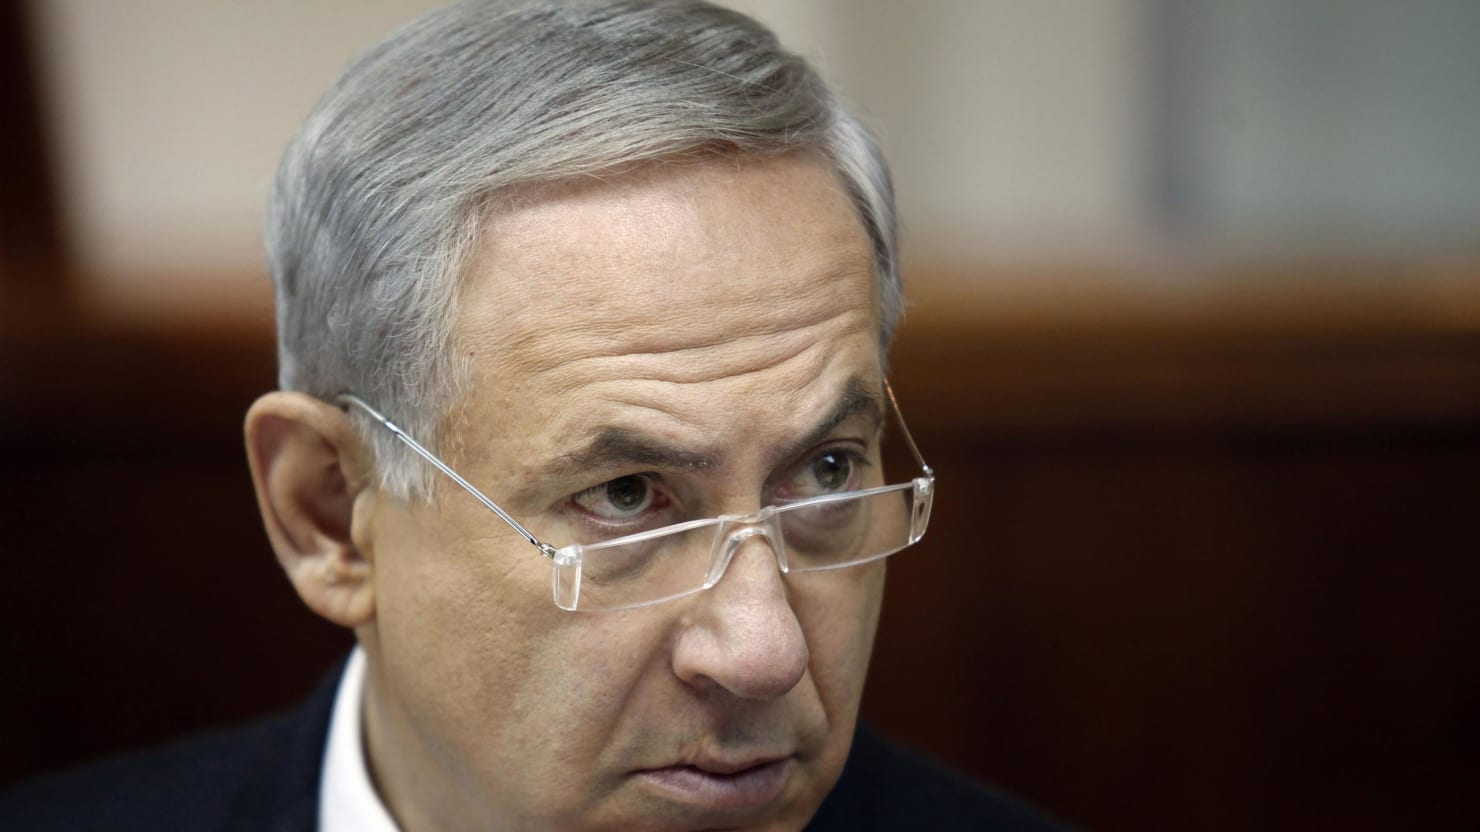 Congress Totally Cool With Israel Spying on U.S. Officials Negotiating With Iran